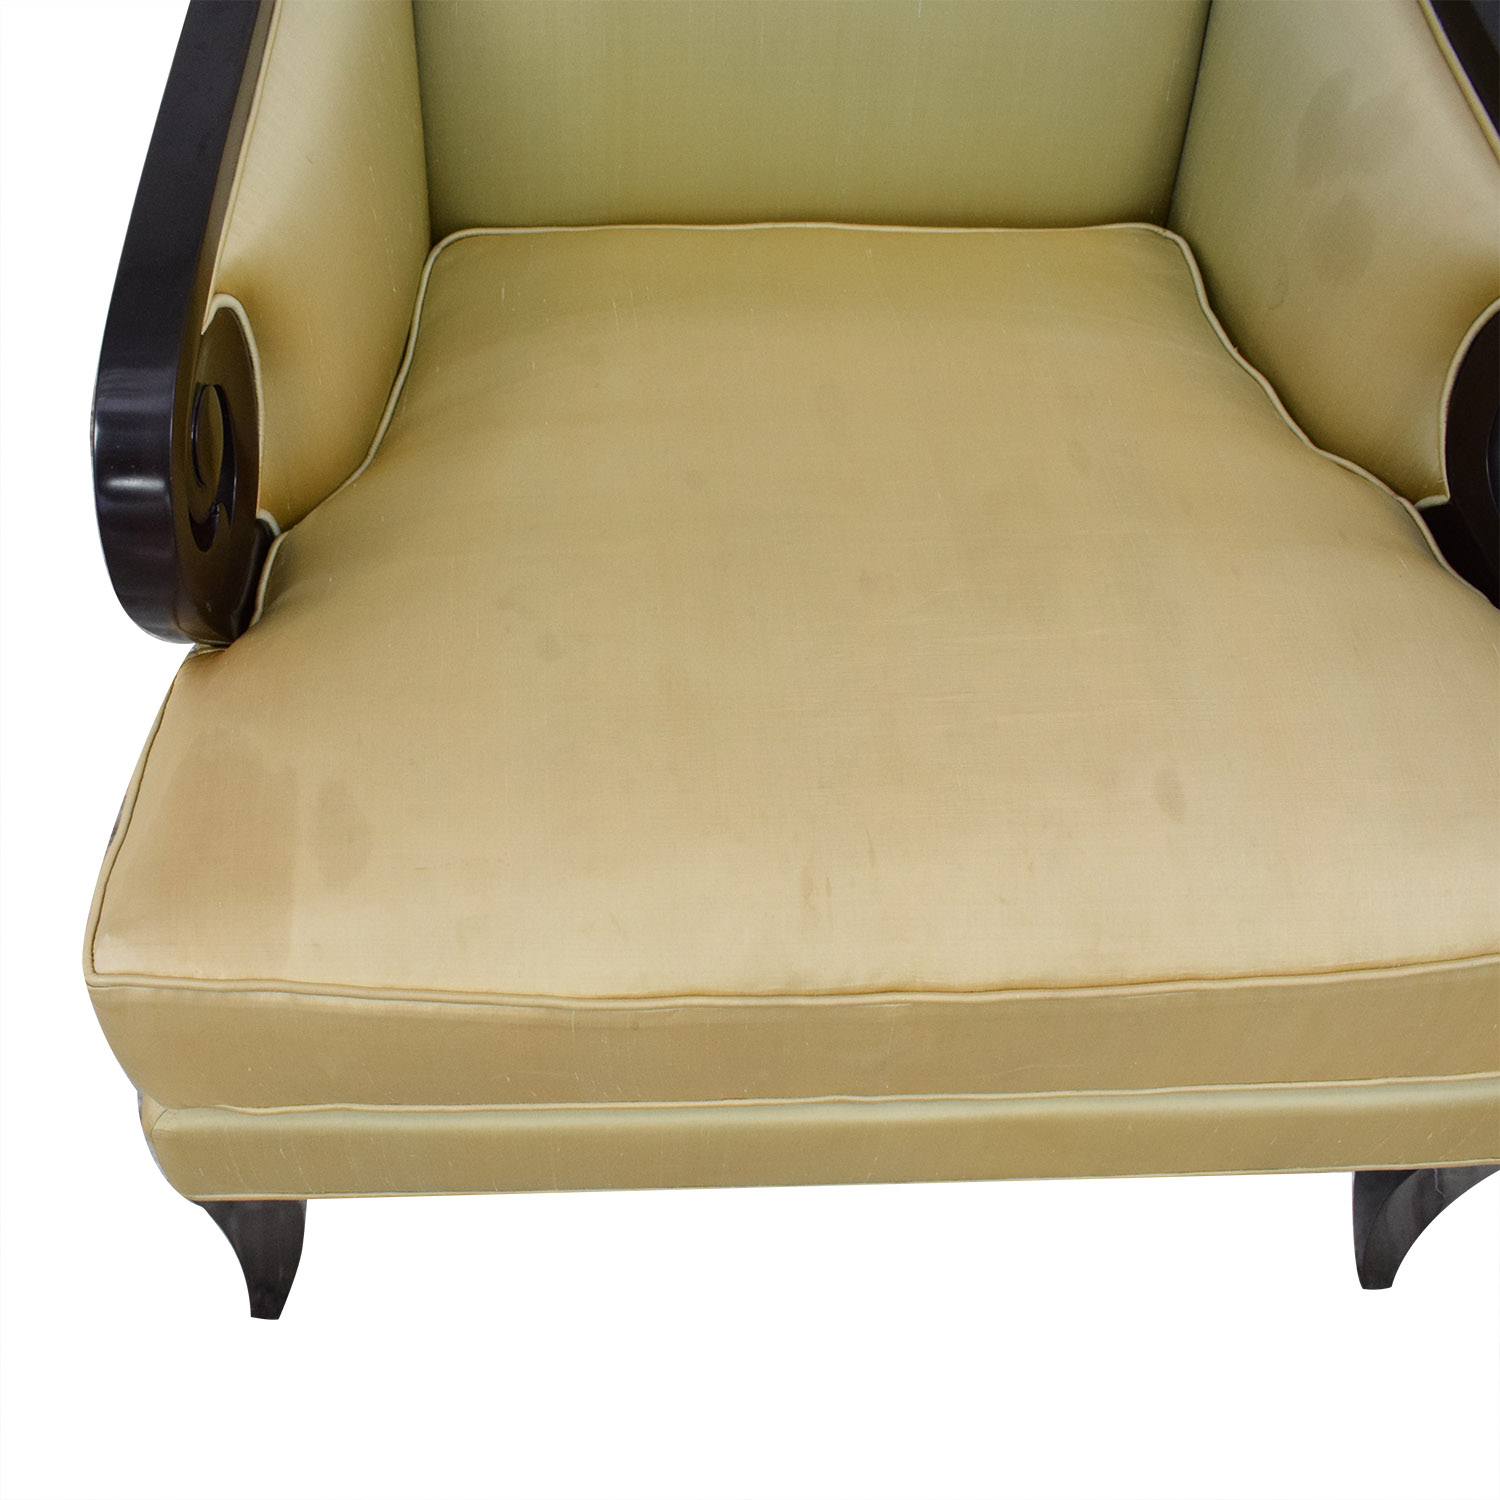 Christopher Guy Christopher Guy Ornate Arm Chair used